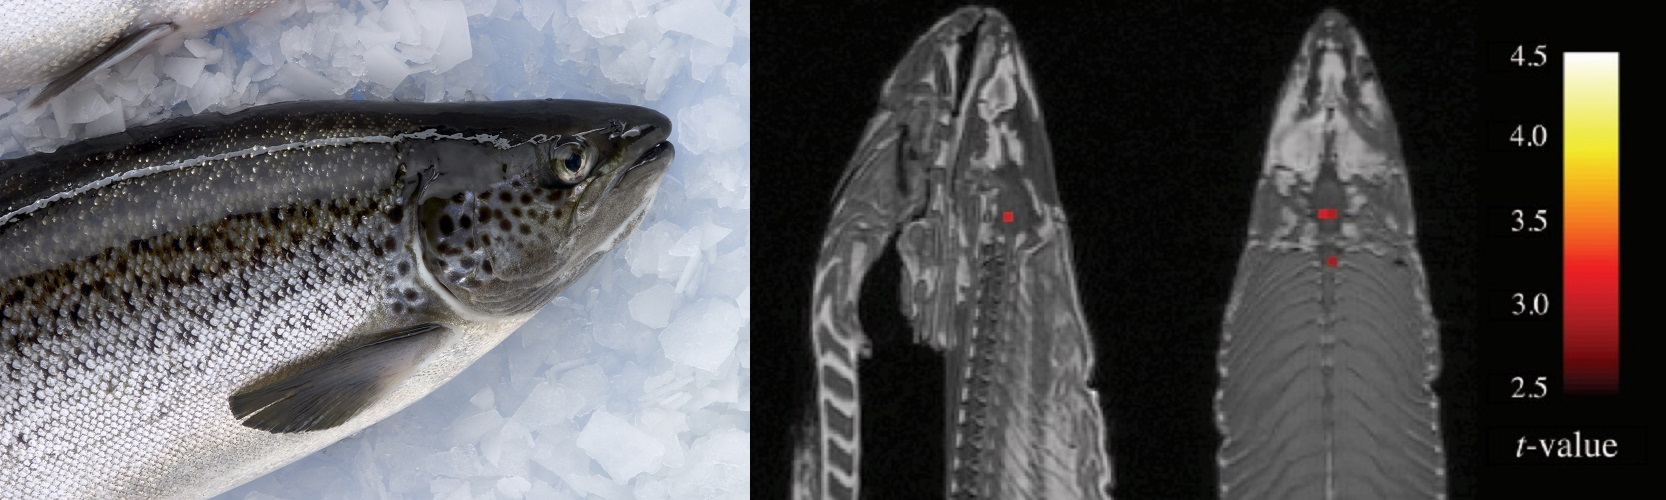 Magnetic resonance imaging revealed apparent neural activity in the brain cavity and spinal column of a dead Atlantic salmon, which was actually a statistical artefact.   Peter Whyte, CSIRO/Wikimedia Commons  (CC BY 3.0);  Bennett et al. (2010)/Journal of Serendipitous and Unexpected Results  (CC BY)